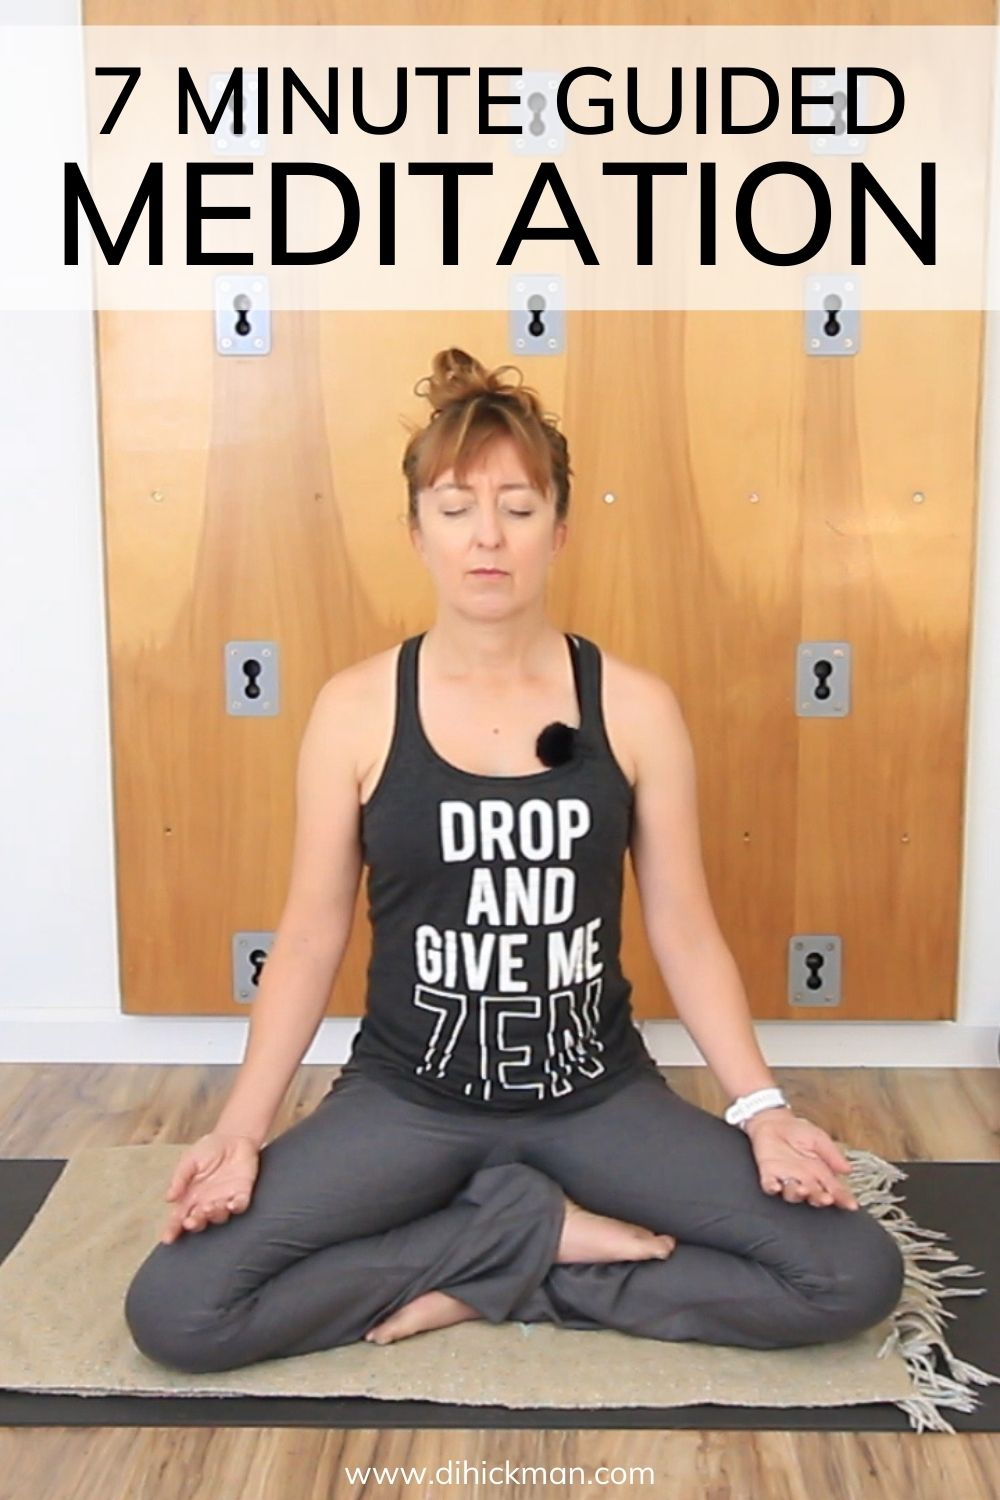 7 minute guided meditation